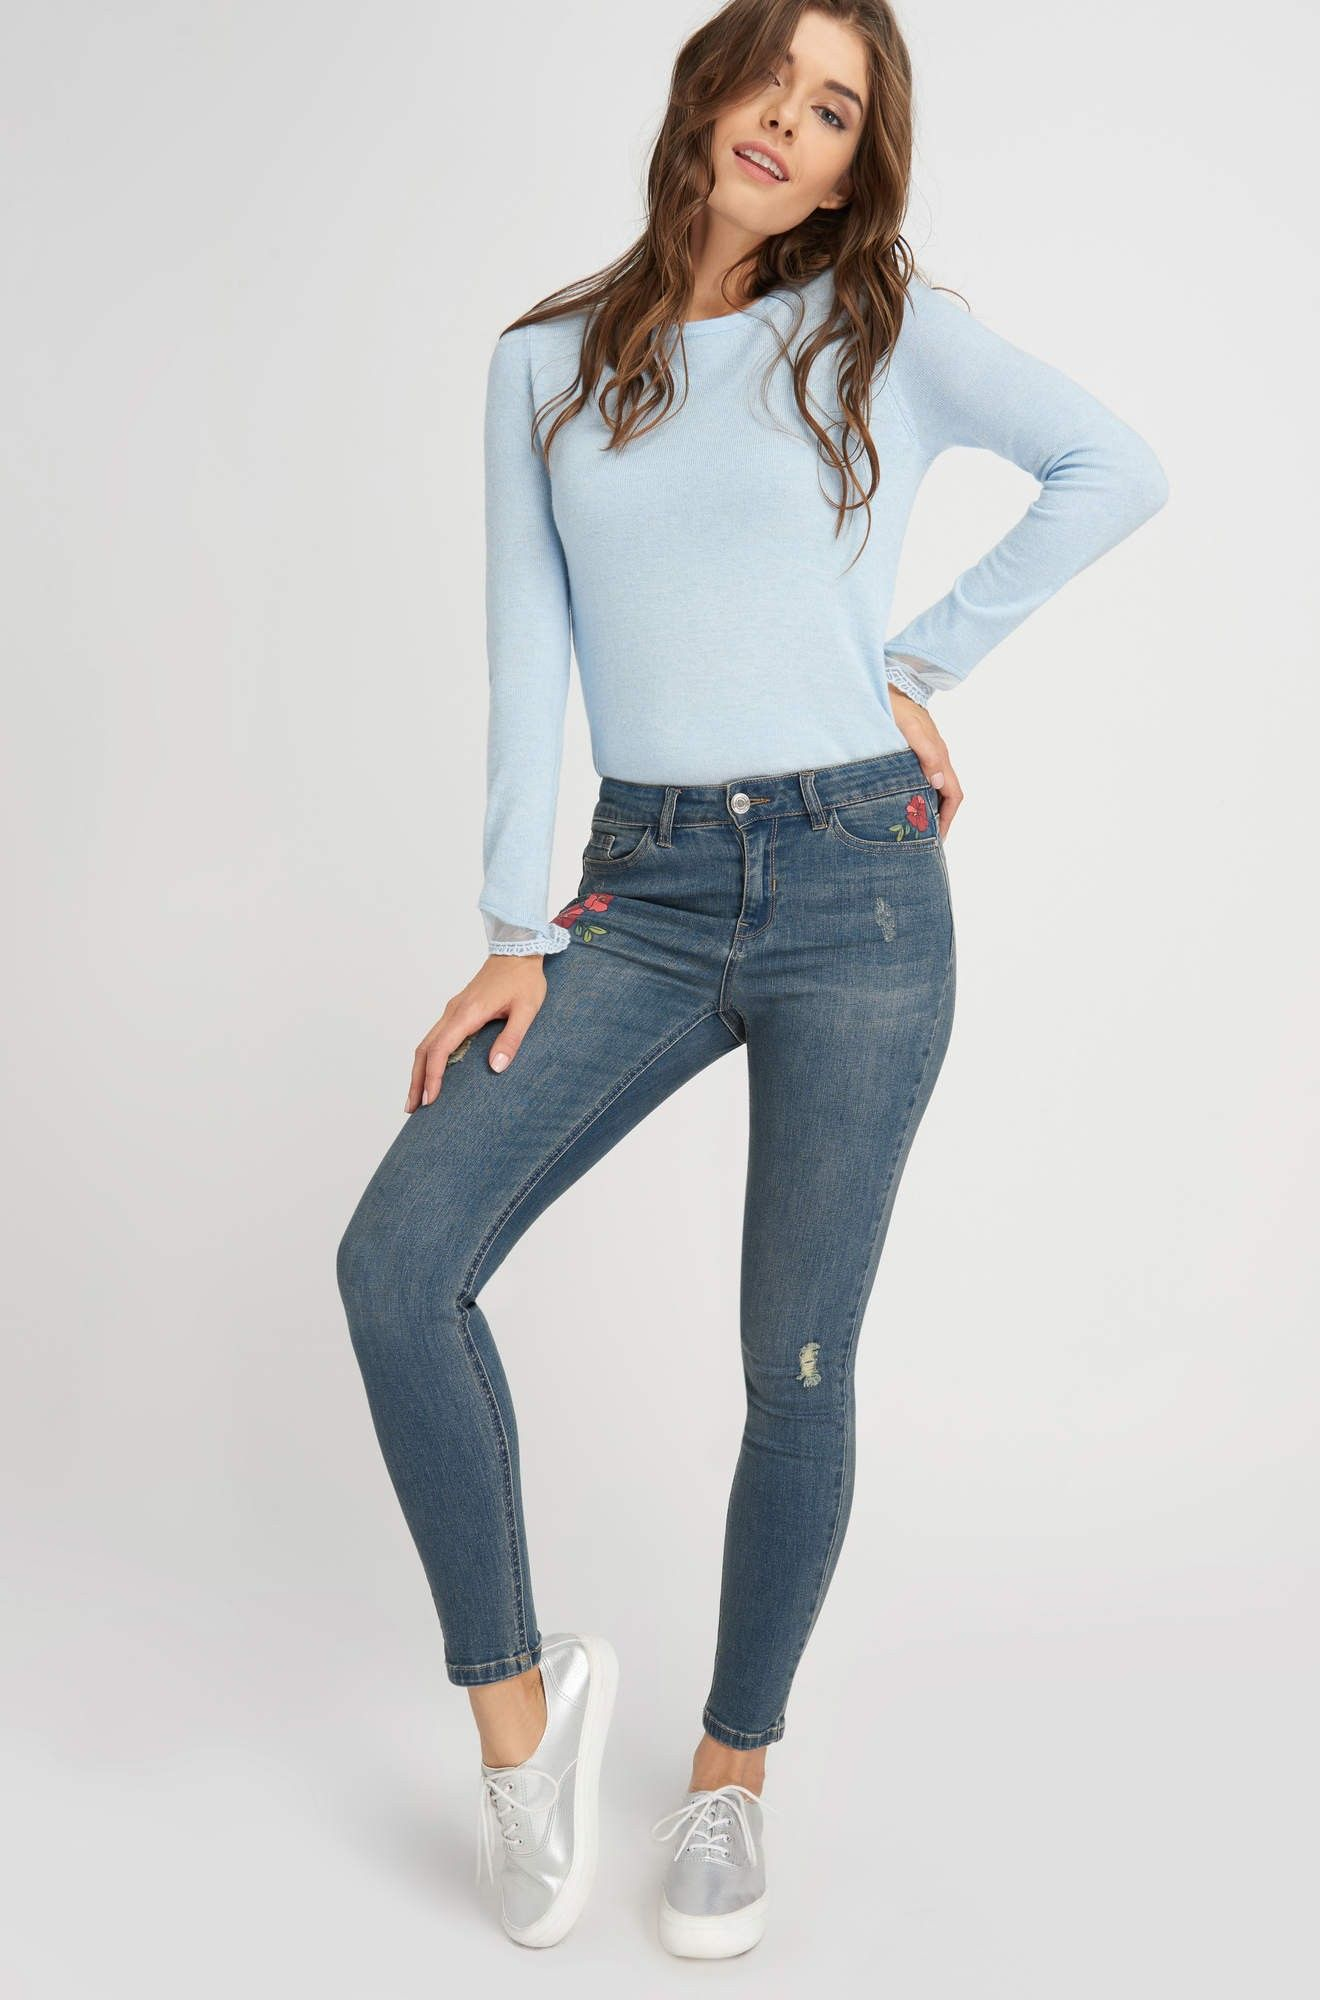 a43918a3558149 ORSAY JEANS | Distressed skinny jeans with flower print #mywork  #fashiondesigner #denim #